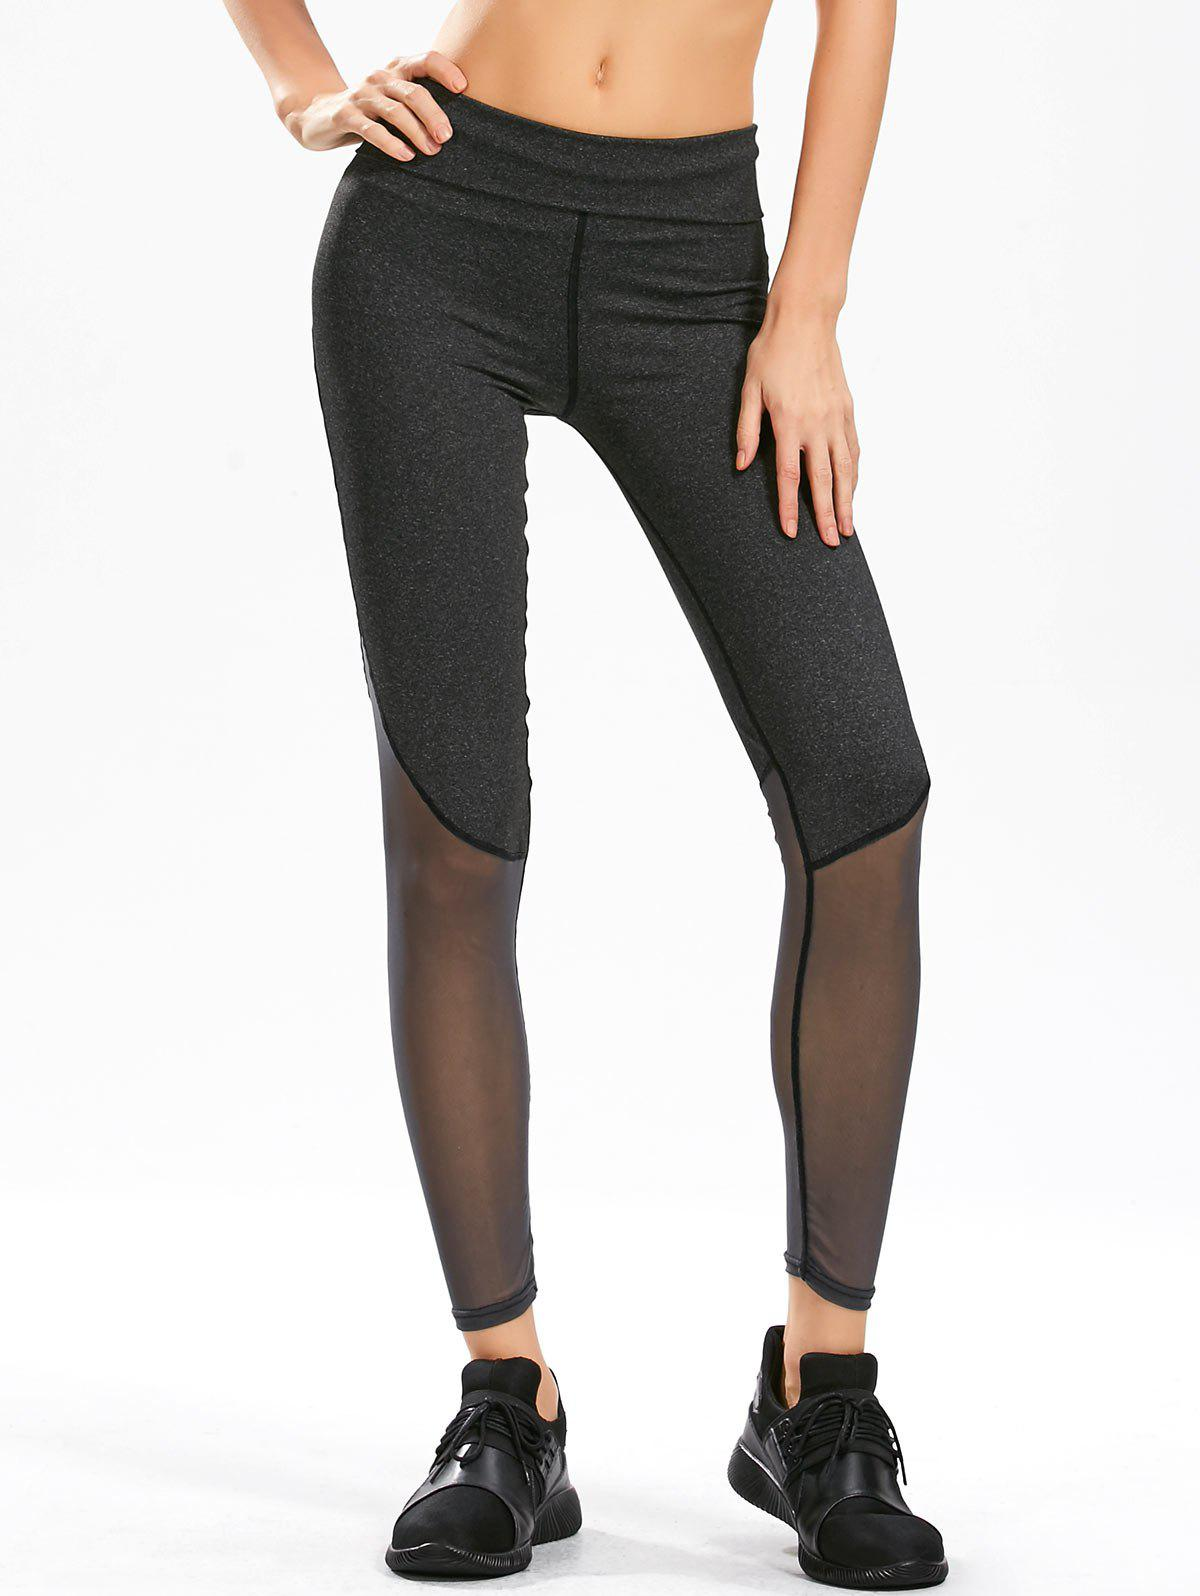 Sheer Mesh Panel Gym Leggings - BLACK GREY M